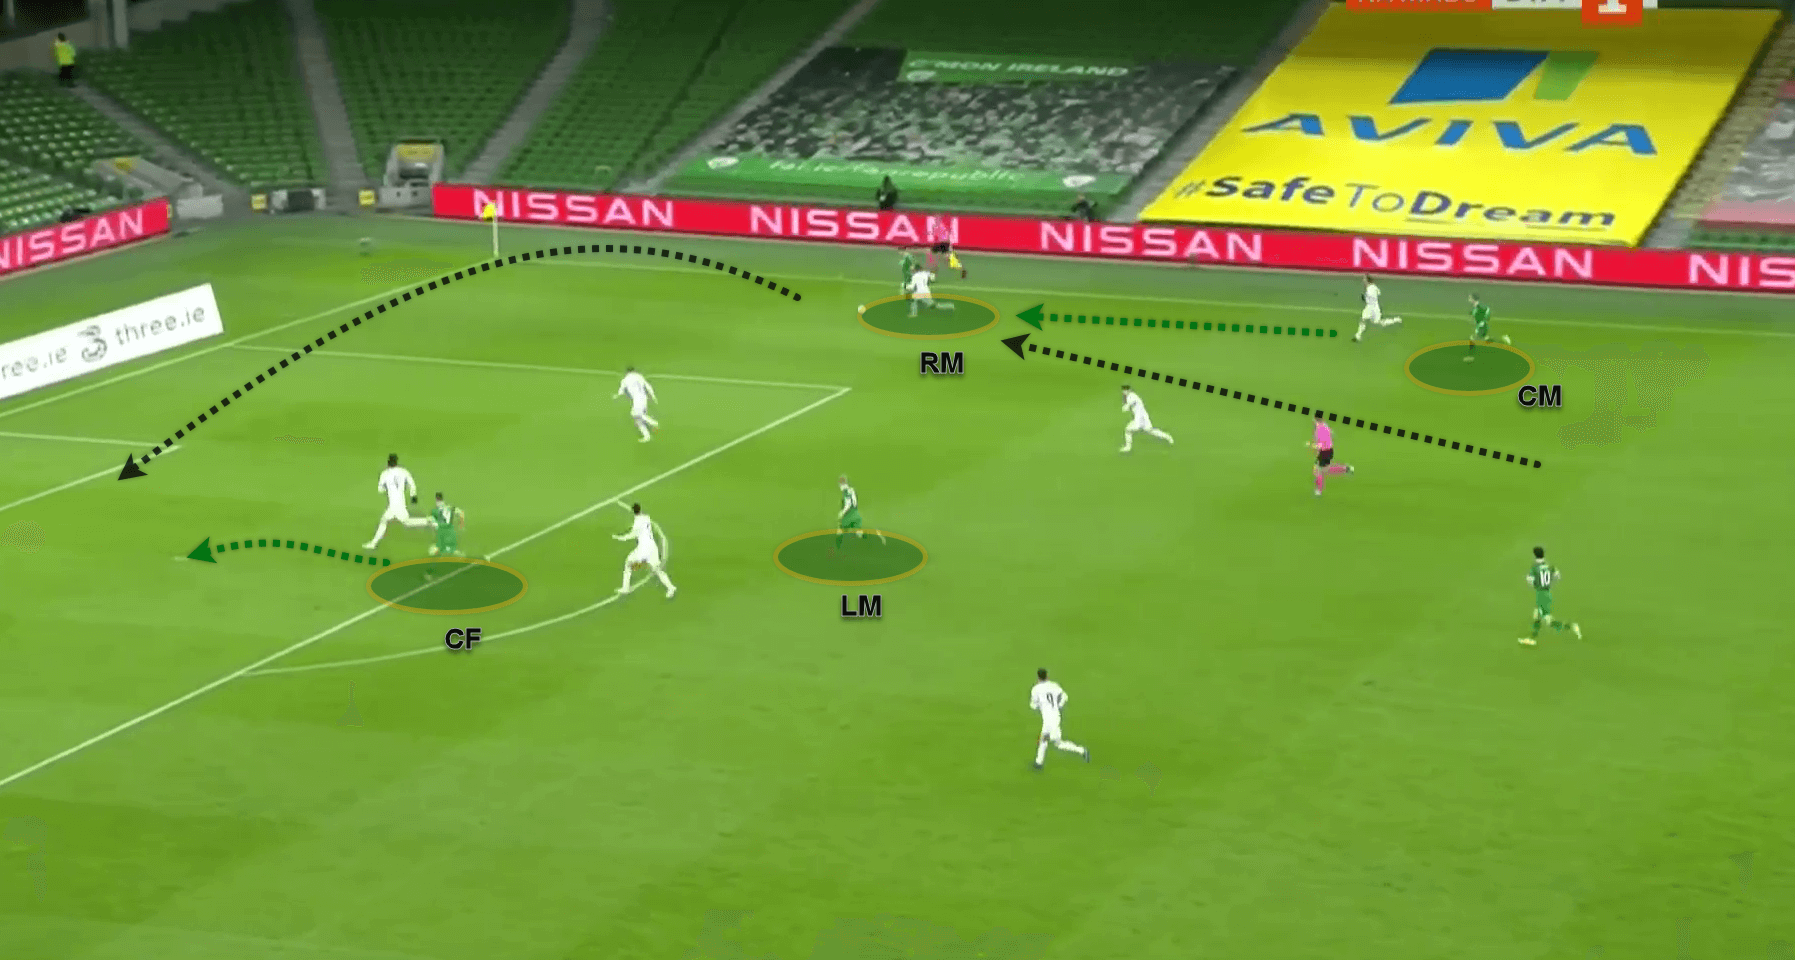 UEFA Nations League 2020: Ireland v Bulgaria - tactical analysis tactics